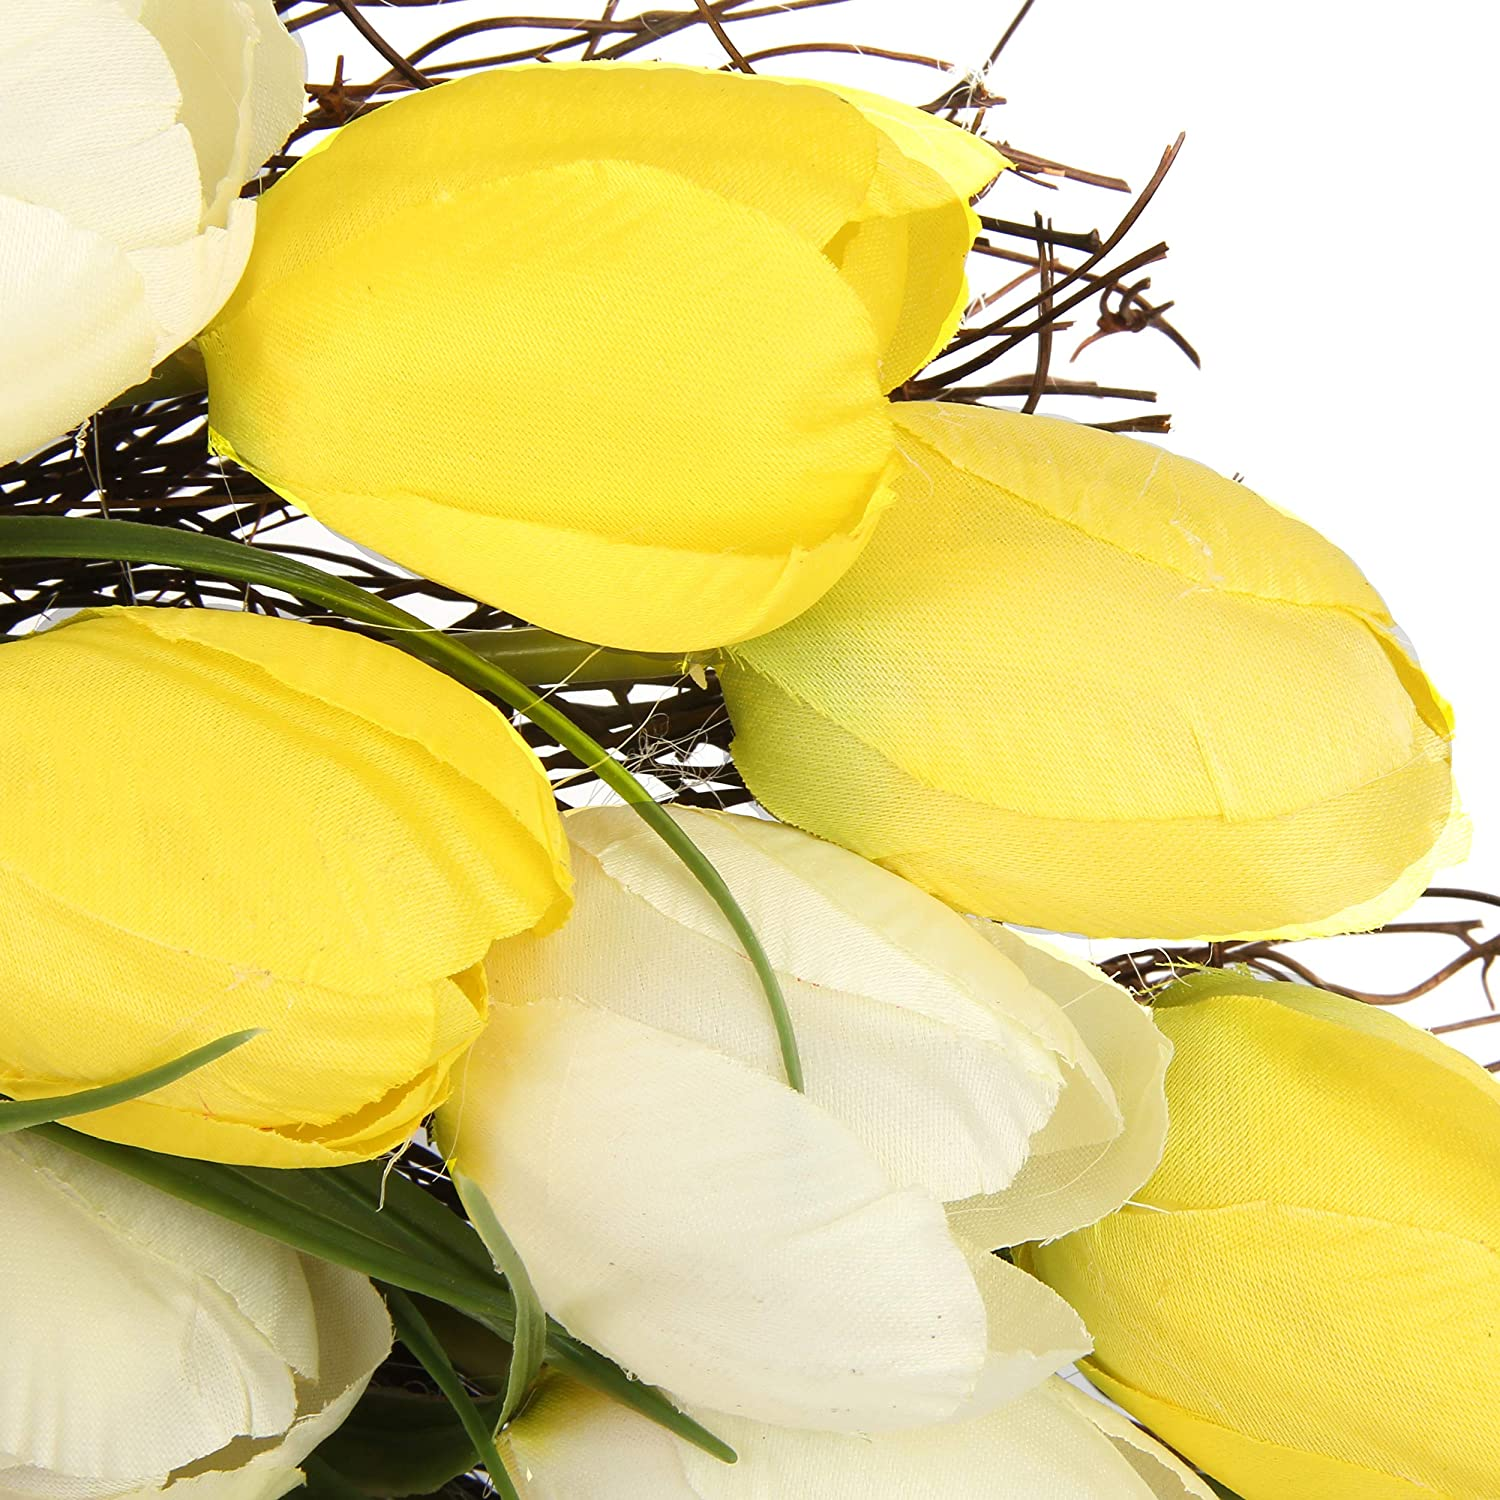 Jusdreen 20 Inch Yellow and White Tulip Spring Artificial Front Door Wreath Home D/écor for Window Wall Party Wedding Valentines Day Hanging Decorations